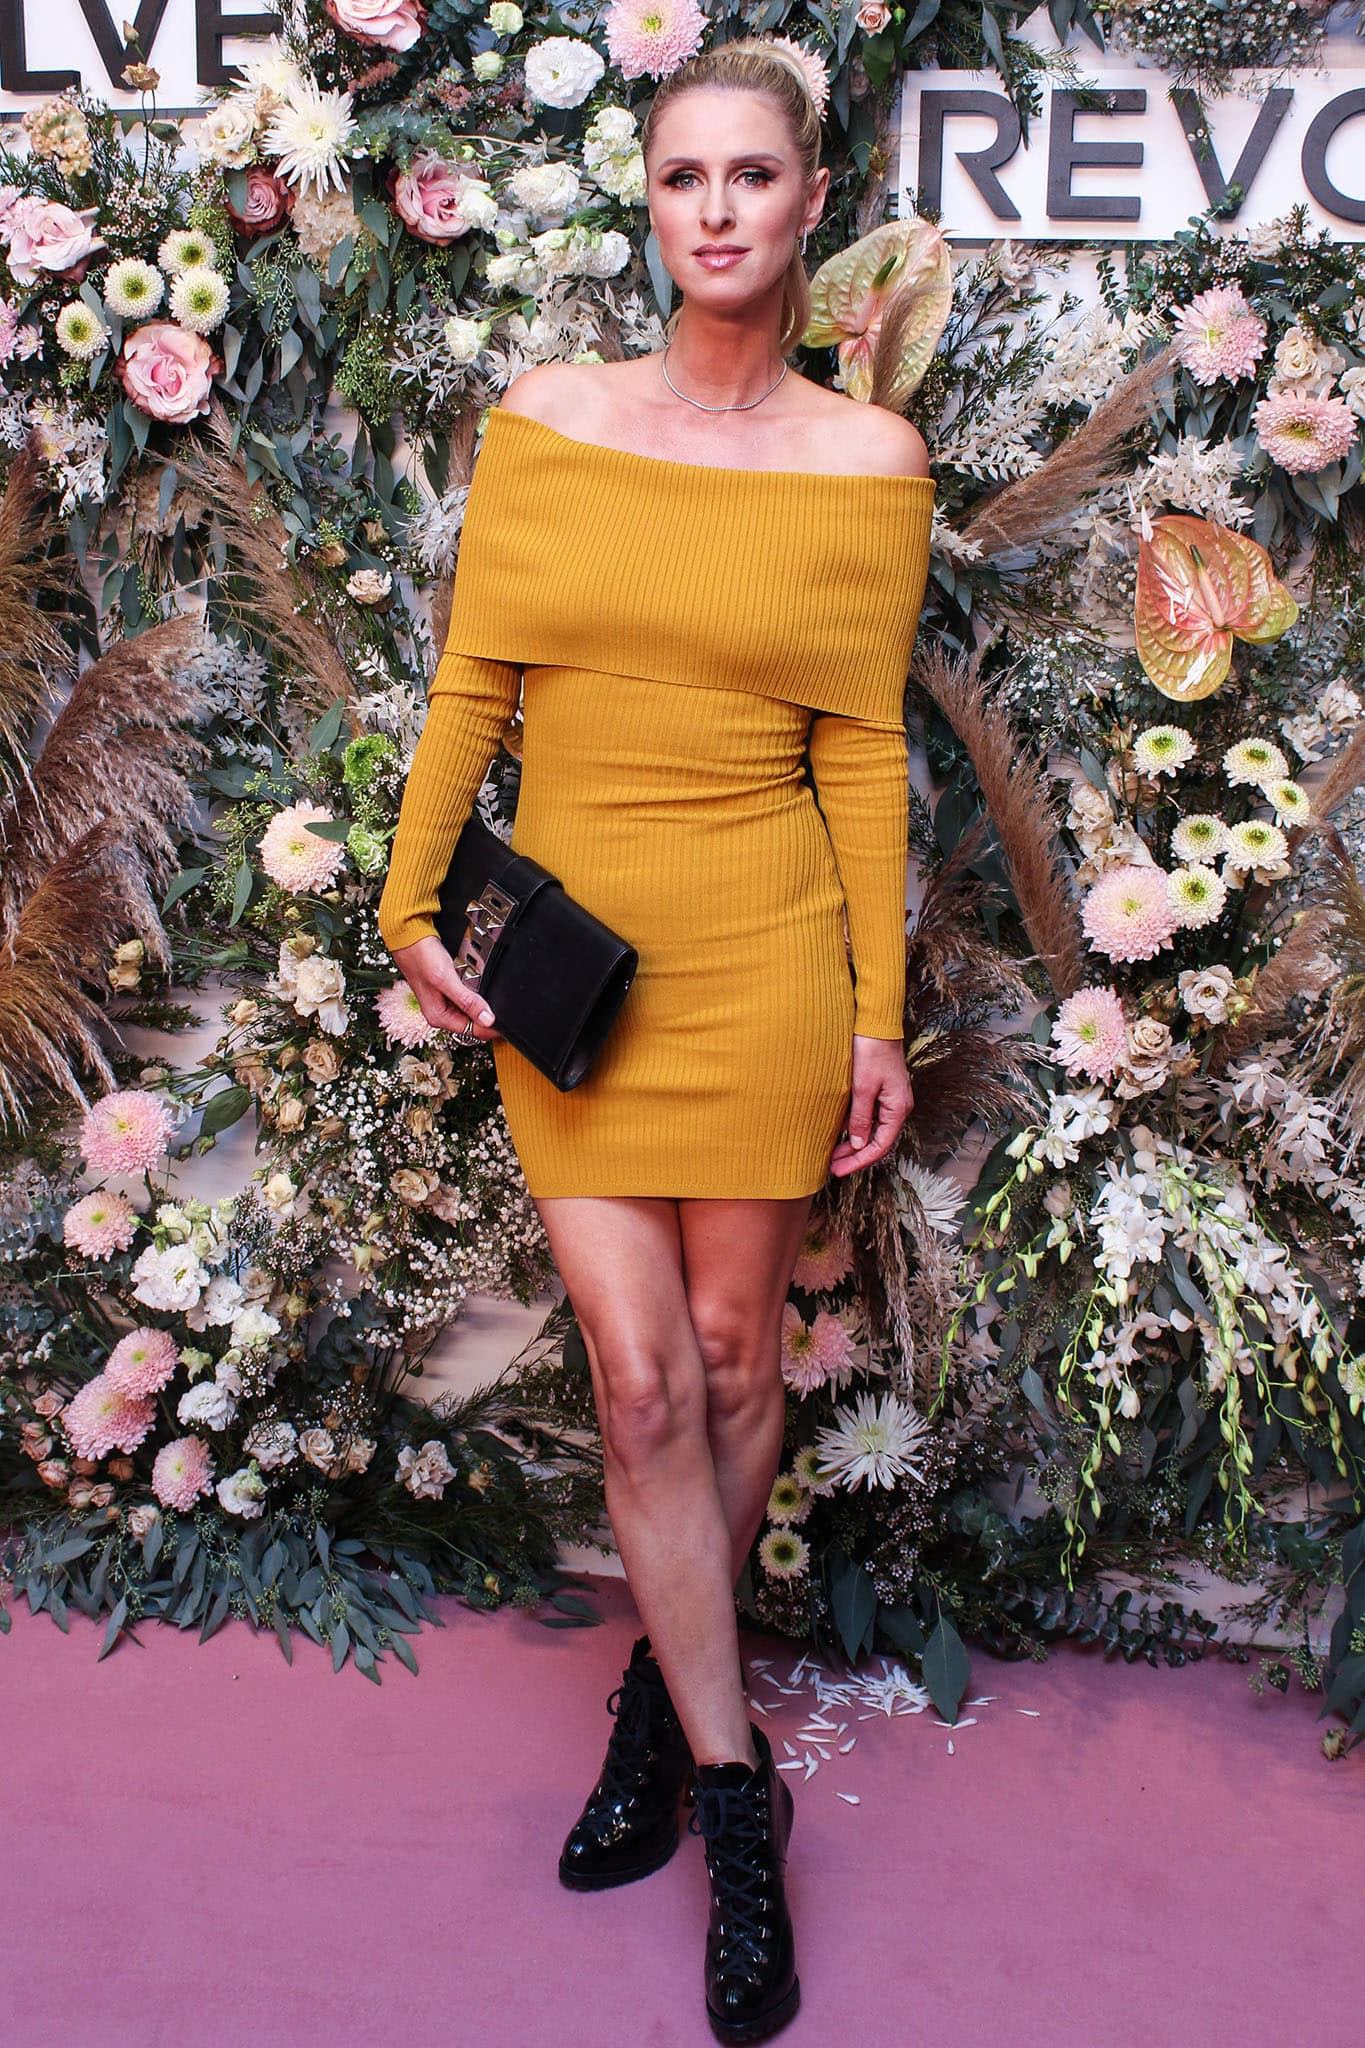 Nicky Hilton shows off her slender physique in a mustard yellow ribbed knit mini dress